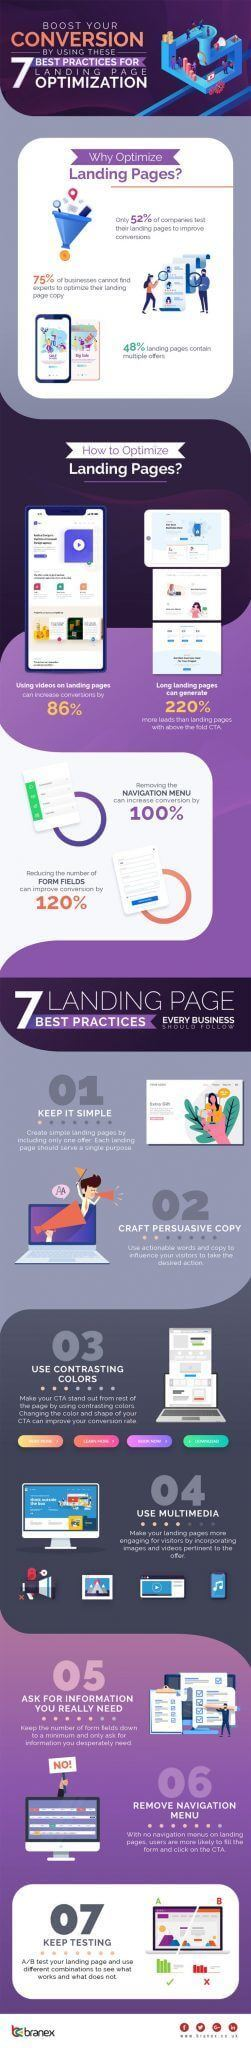 7 Landing Page Best Practices to Improve Your Website Conversion Rate